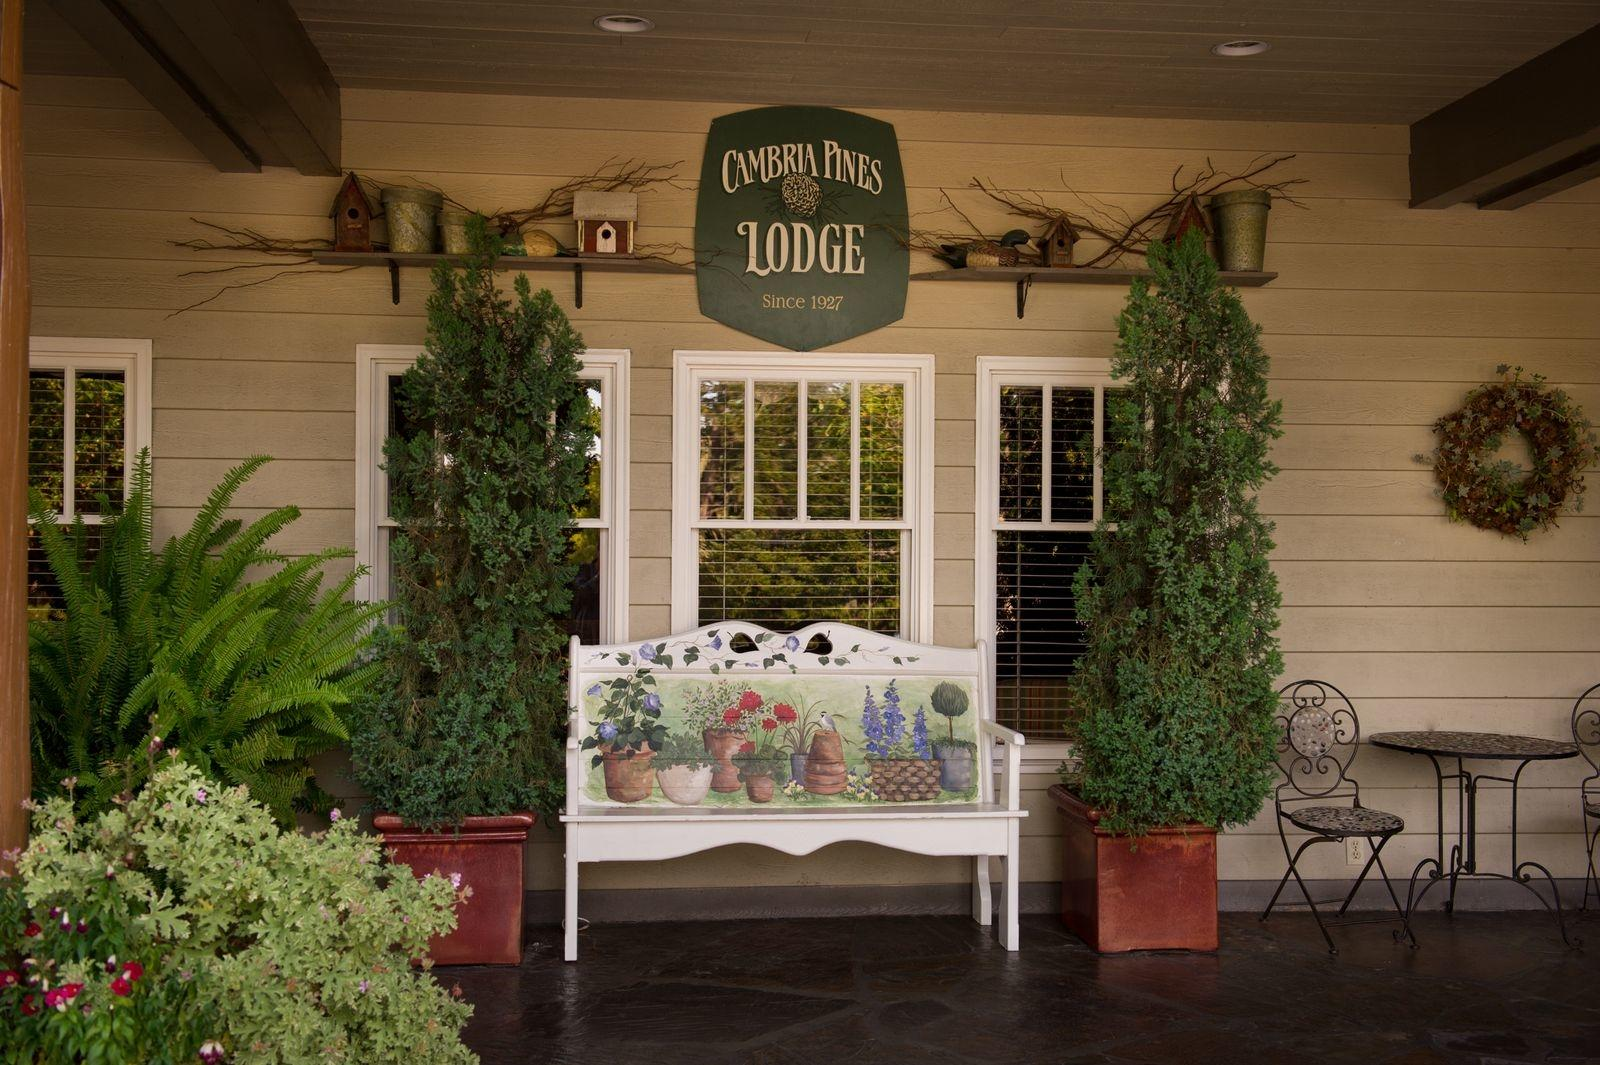 Front porch of Cambria Pines Lodge